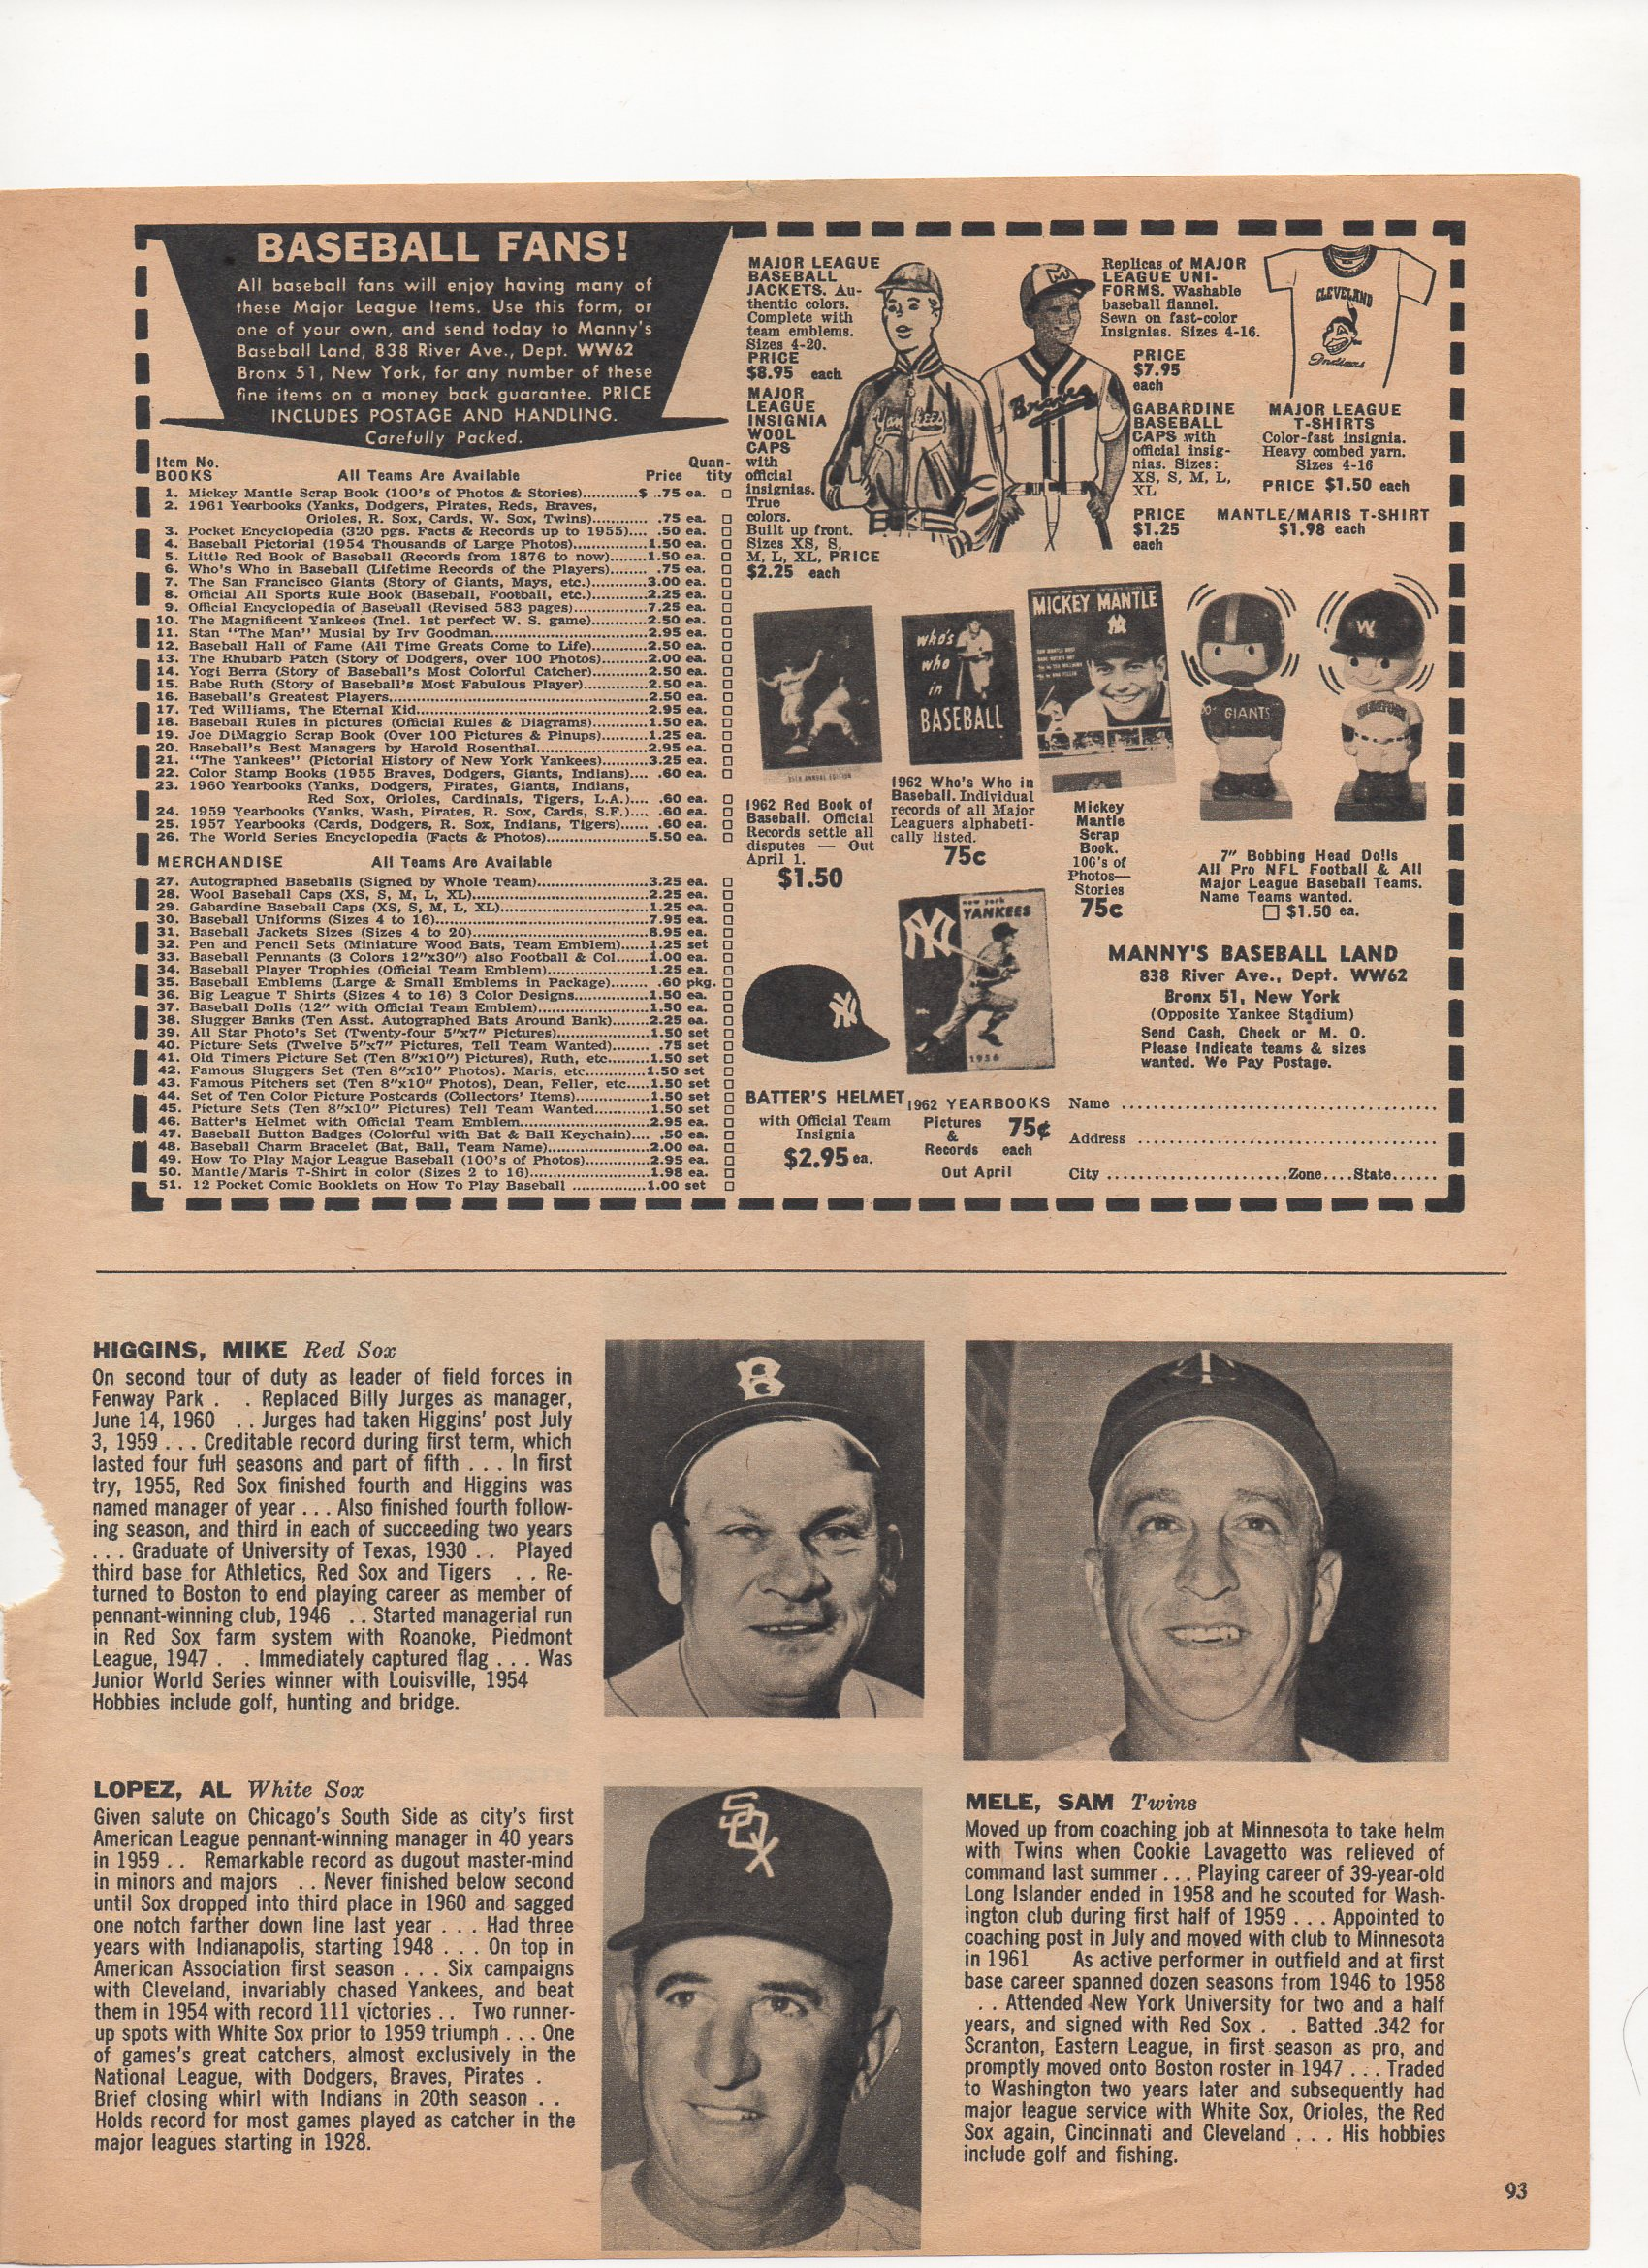 1962 dell sports, july, vol 1, no. 27